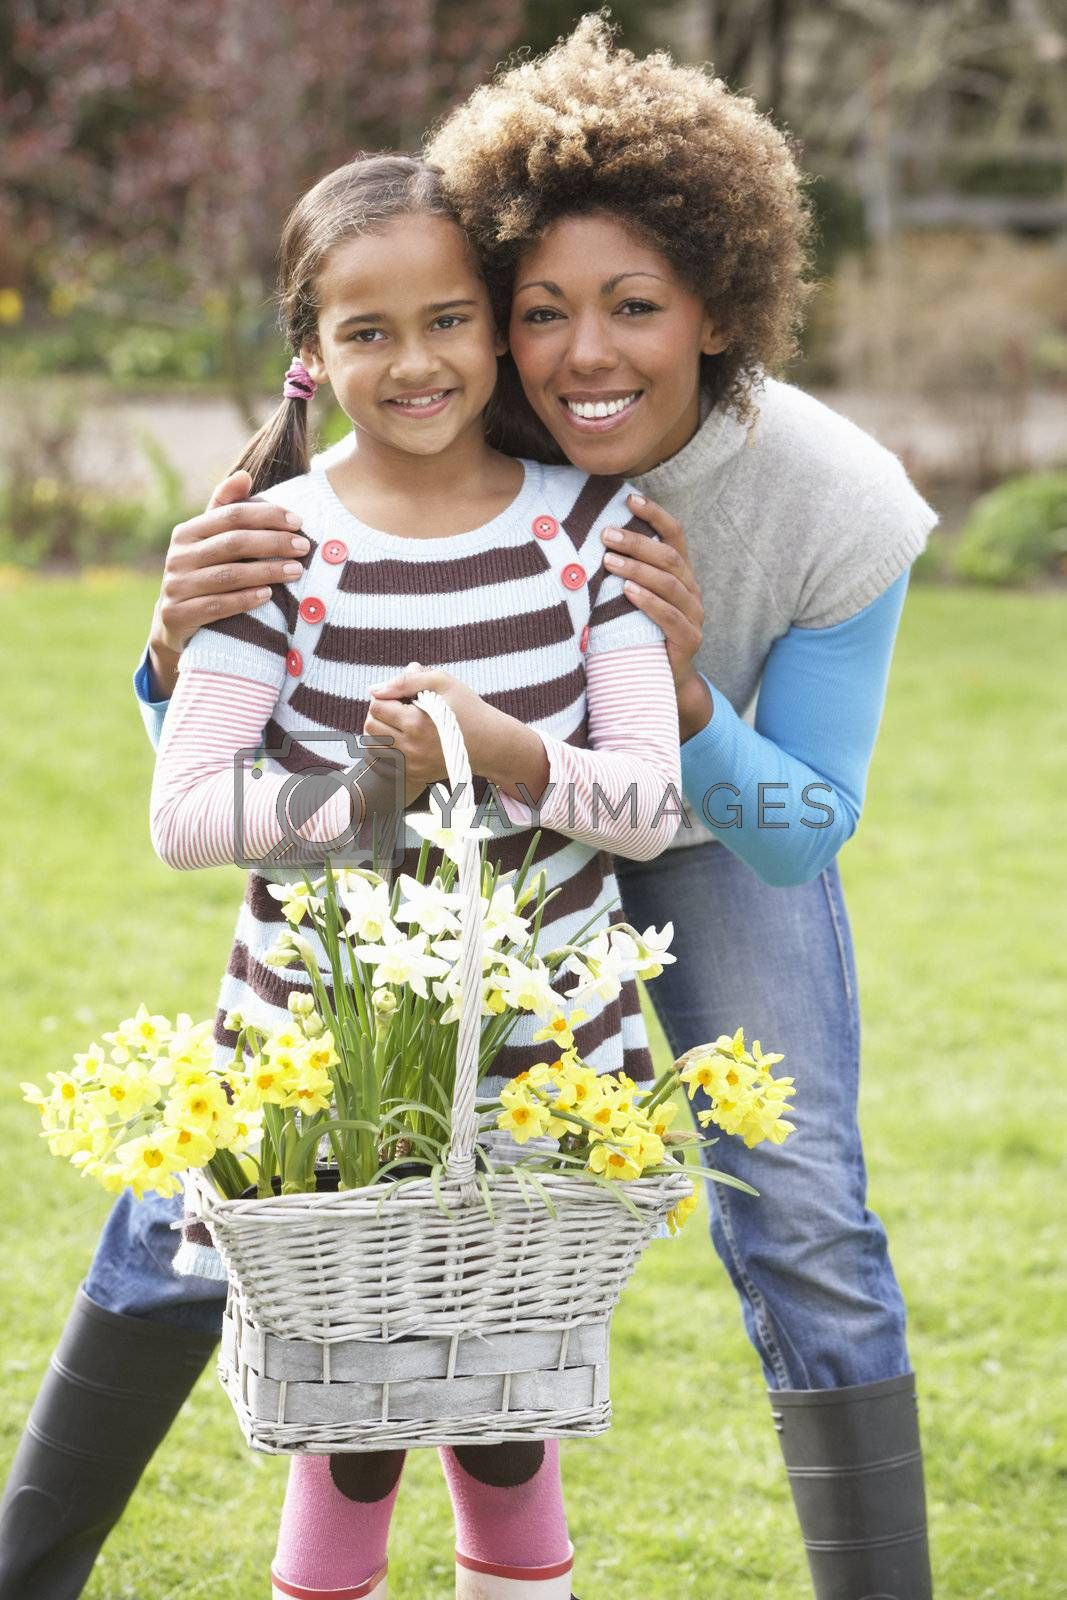 Mother And Daughter Holding Basket Of Daffodils In Garden by OMG Images